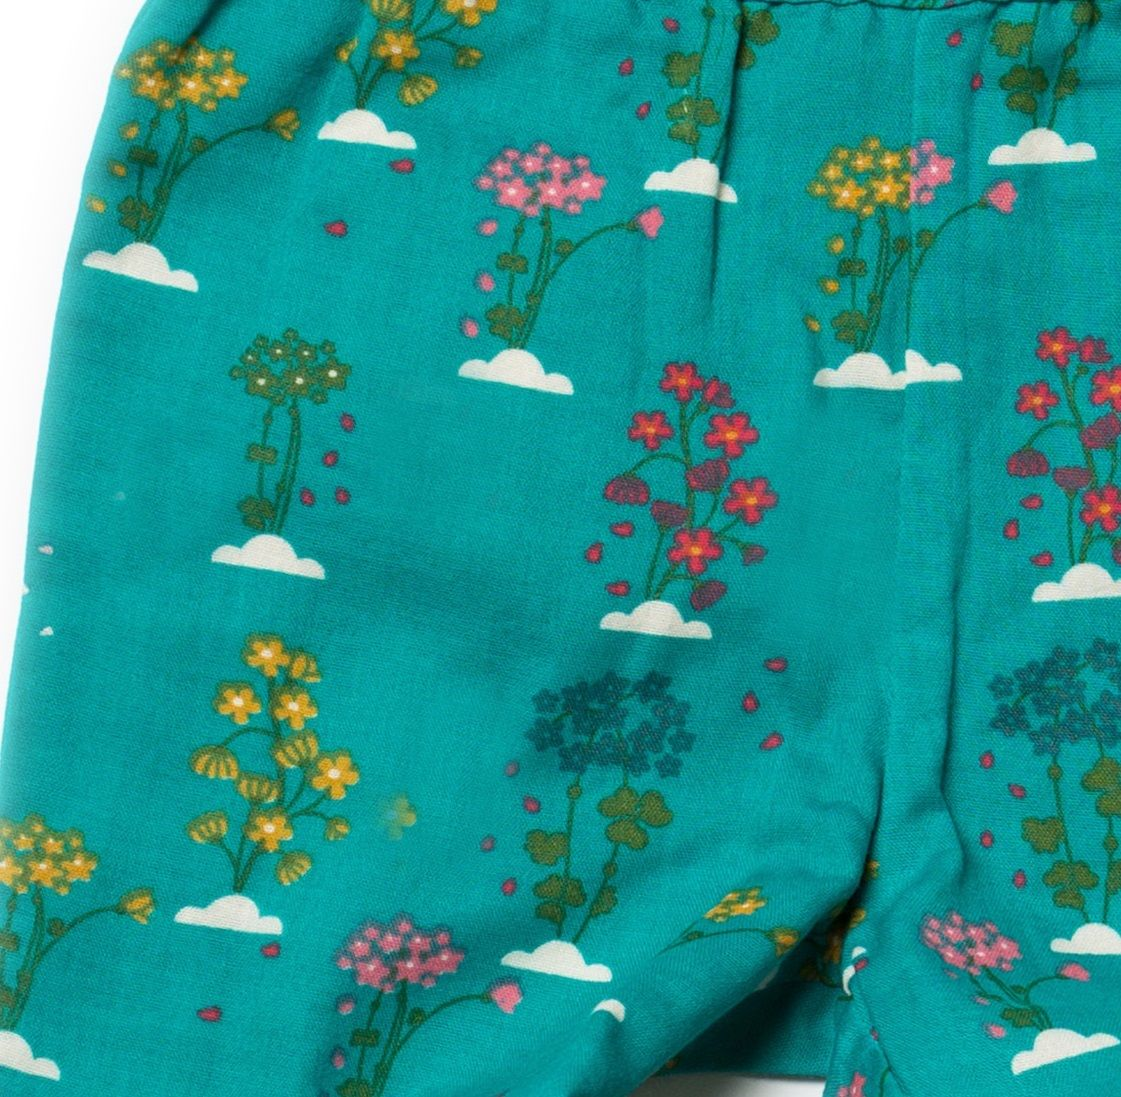 Little Green Radicals Botanical Jelly Bean Pants